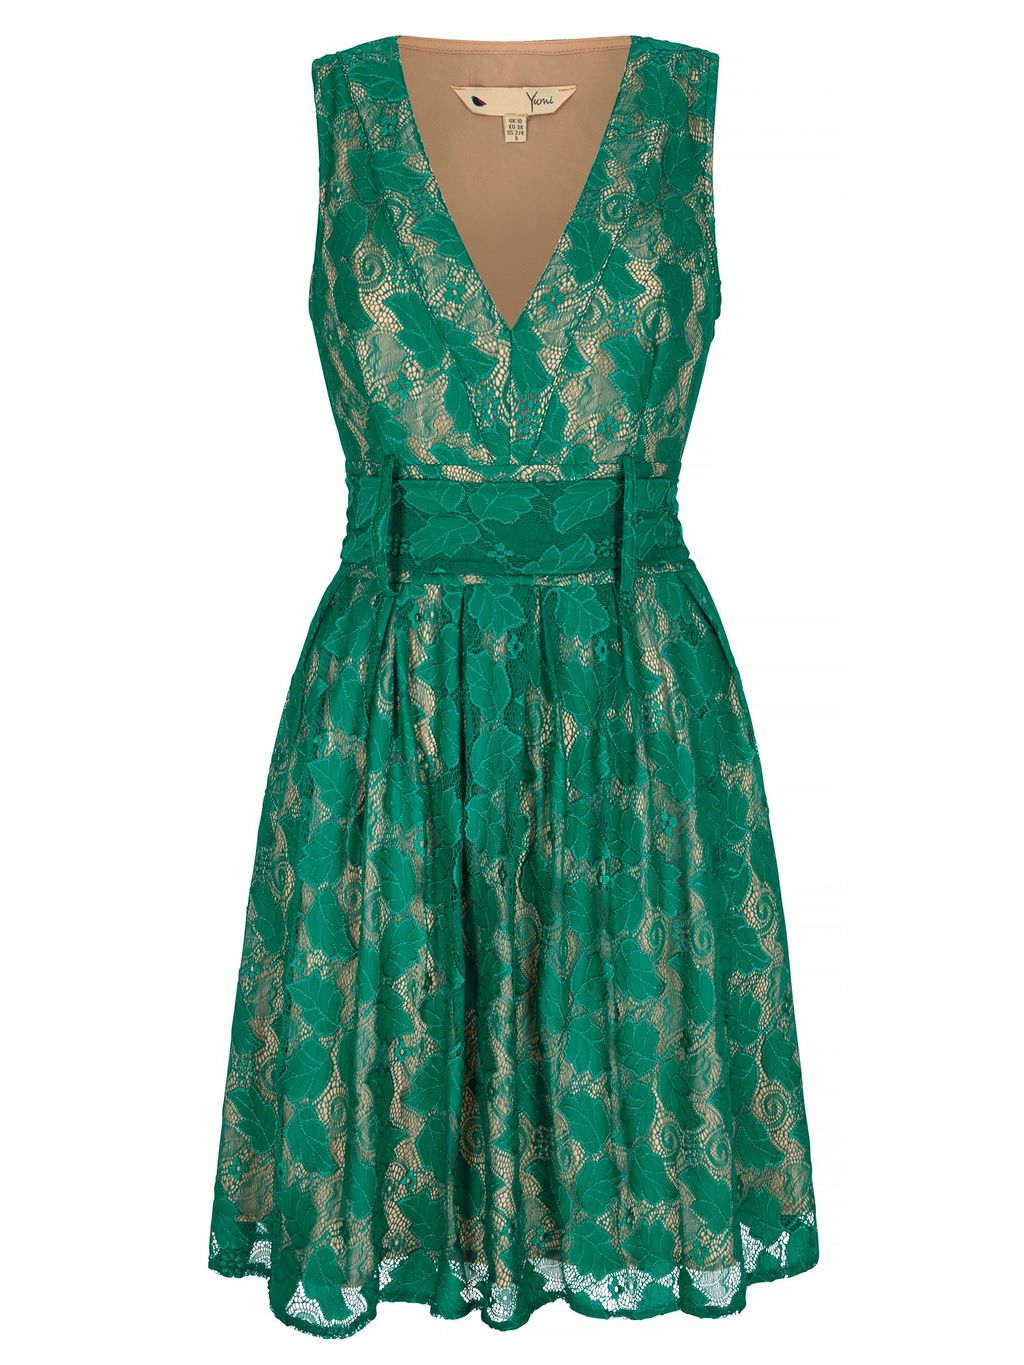 Vintage Lace Dress, Green - neckline: v-neck; sleeve style: sleeveless; predominant colour: emerald green; length: on the knee; fit: fitted at waist & bust; style: fit & flare; fibres: polyester/polyamide - stretch; occasions: occasion; sleeve length: sleeveless; texture group: lace; pattern type: fabric; pattern size: standard; pattern: patterned/print; embellishment: lace; season: s/s 2016; wardrobe: event; embellishment location: pattern